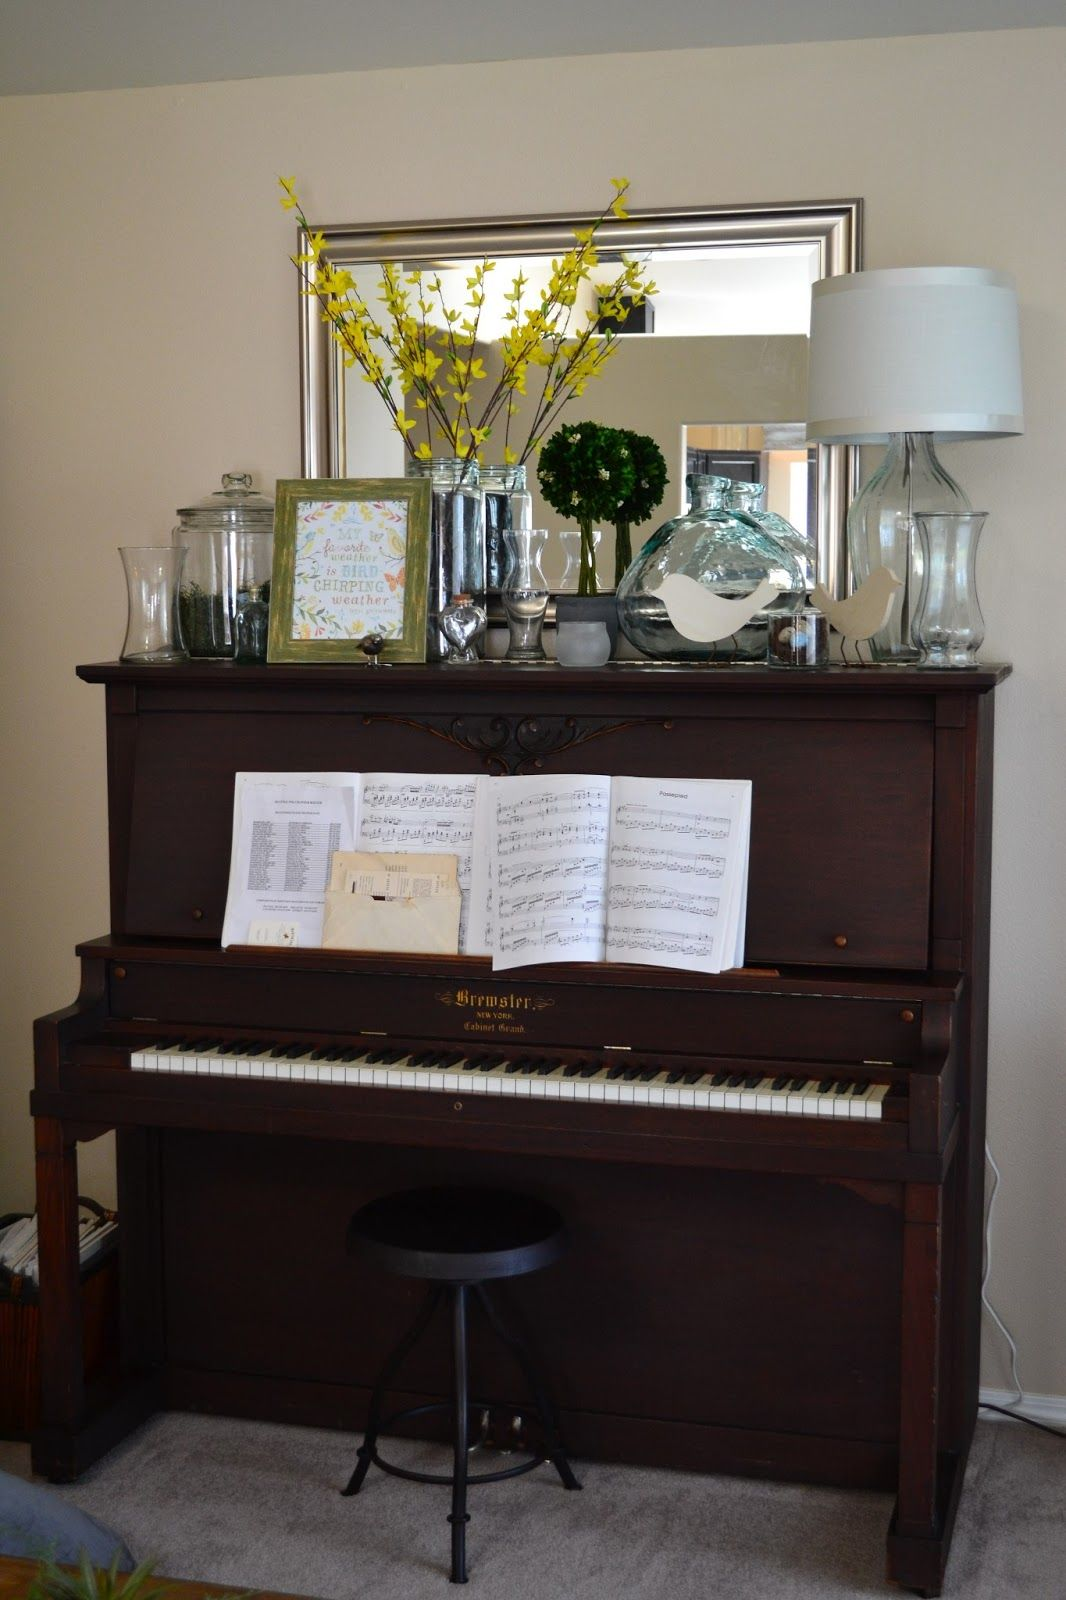 Spring decor on top of the piano i did this pinterest for Piano room decor